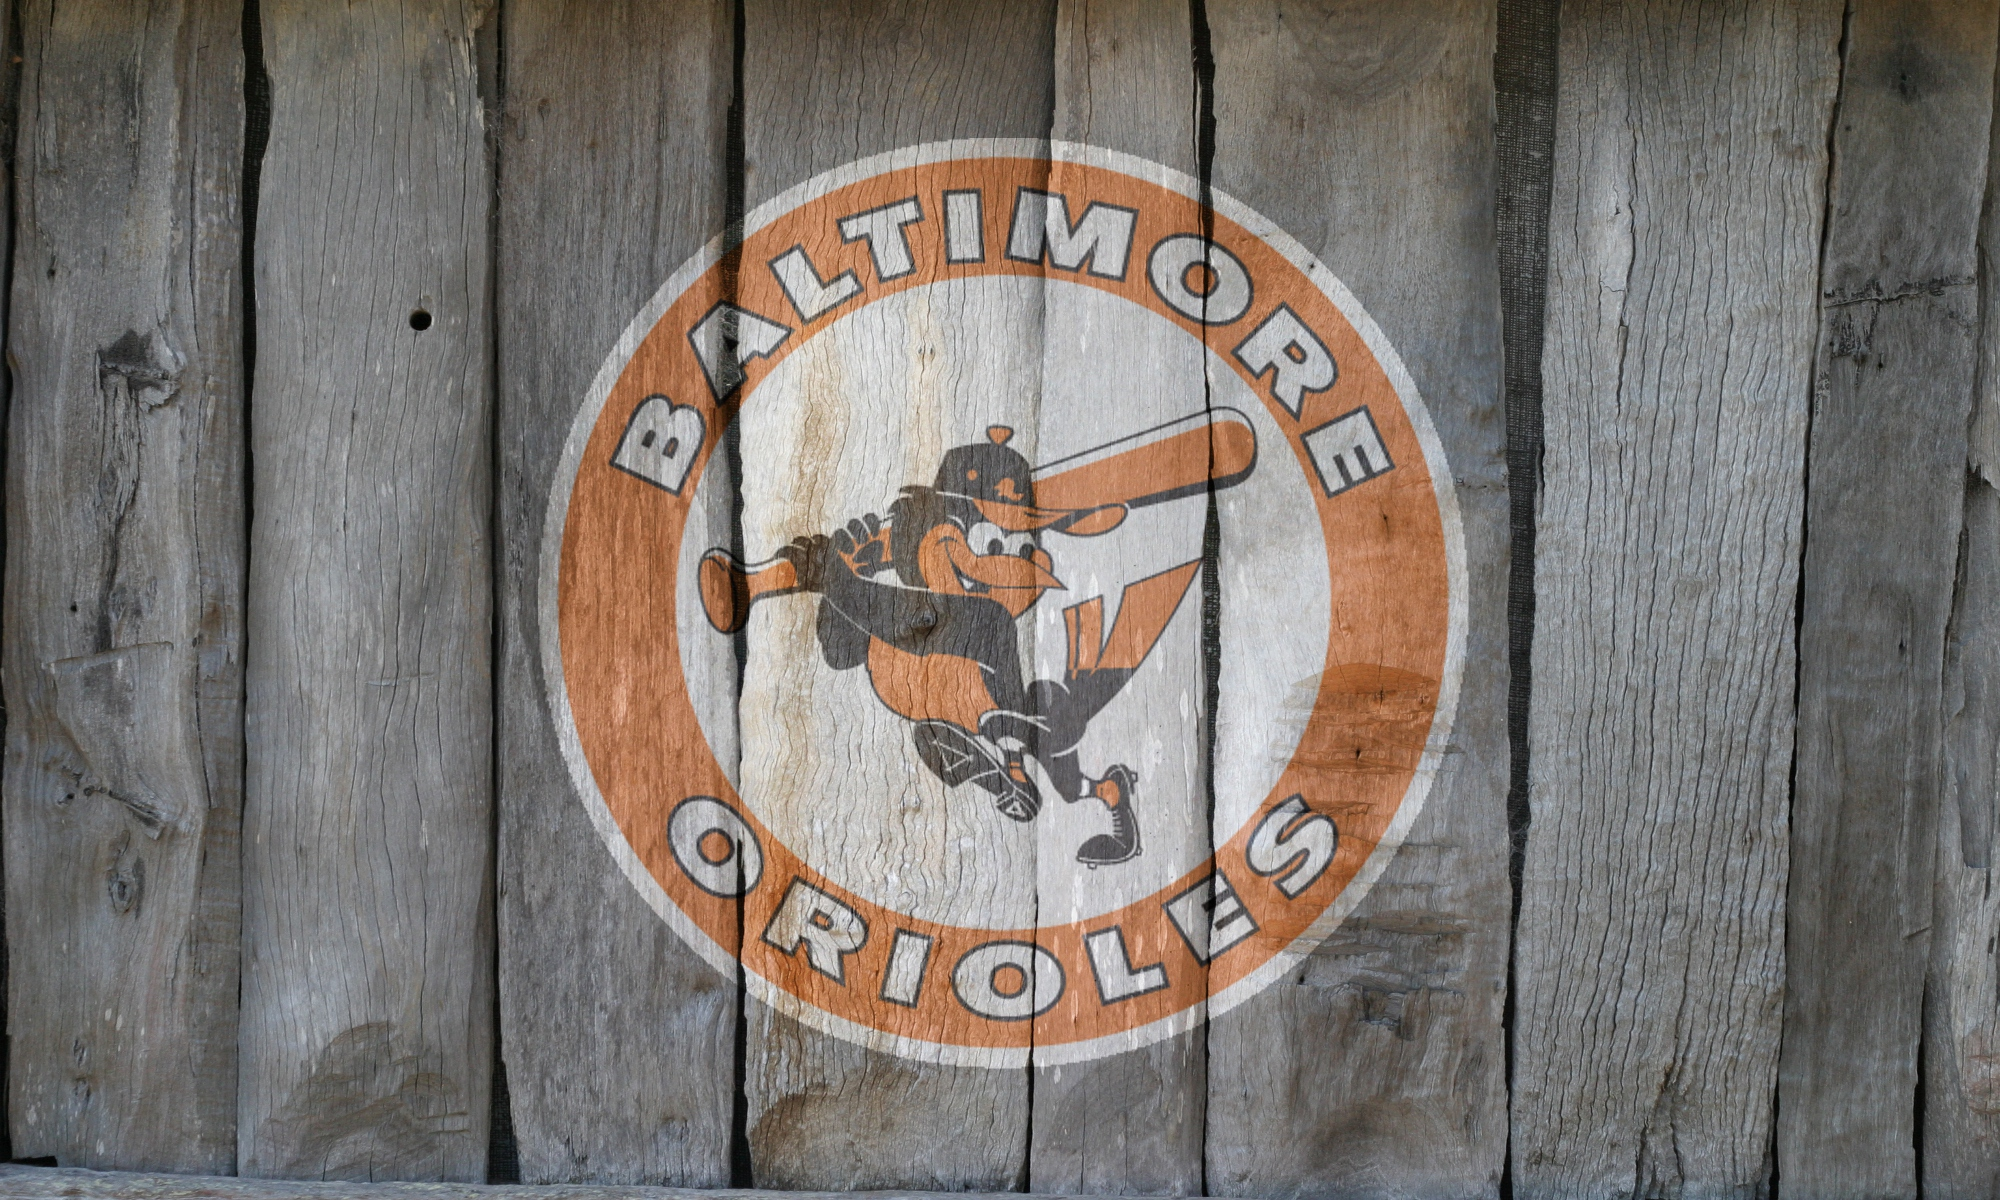 Throwback Baltimore Orioles Logo on Wood Fence by Oultre 2000 x 2000x1200